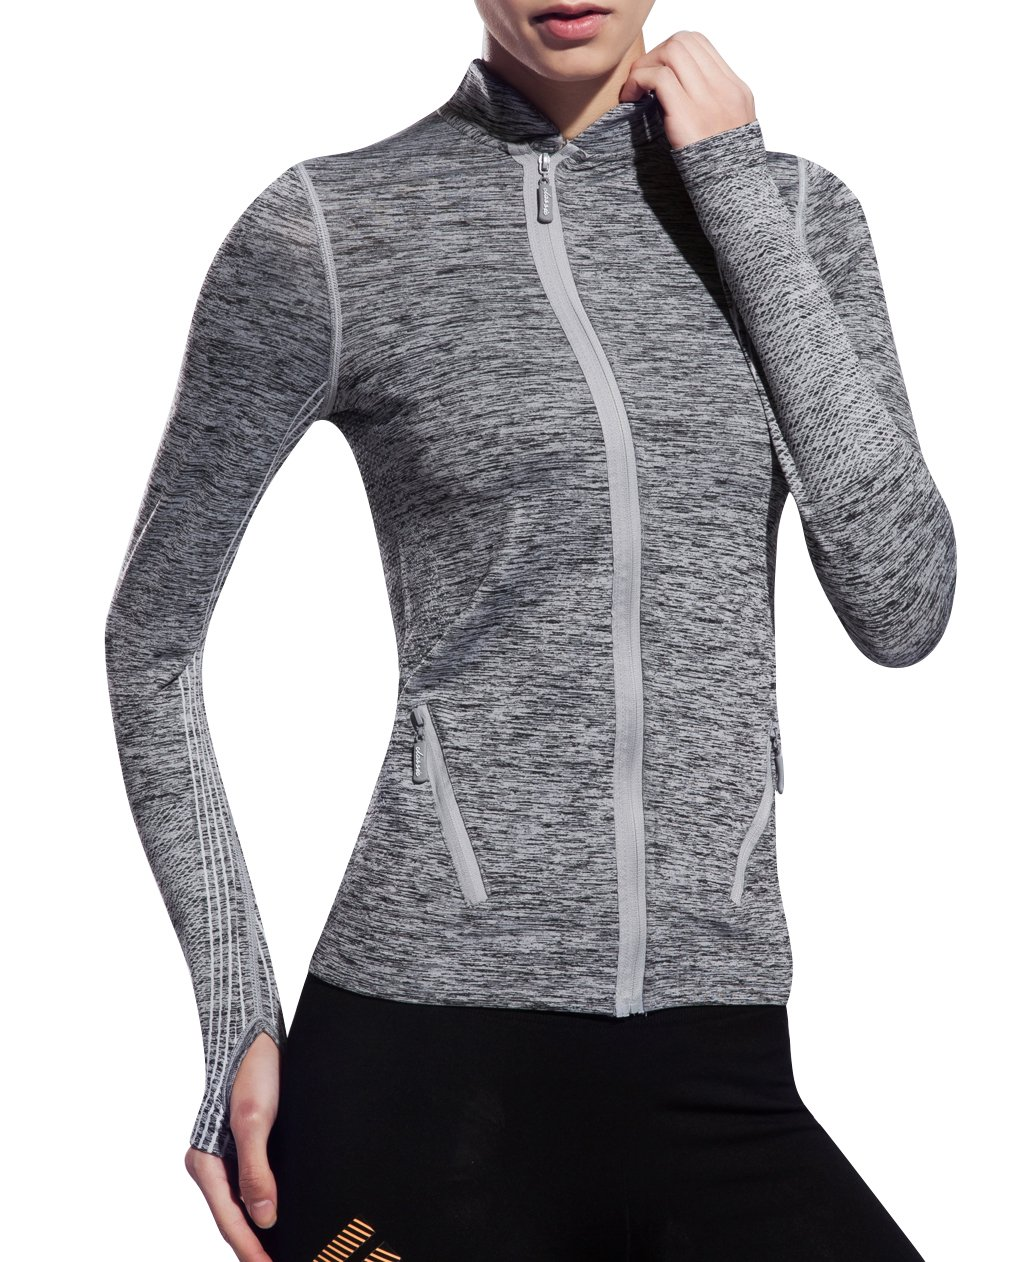 UDIY Women Yoga Jacket-Slim Sports Full Zip Coat with Two Size Pockets-Gray by UDIY